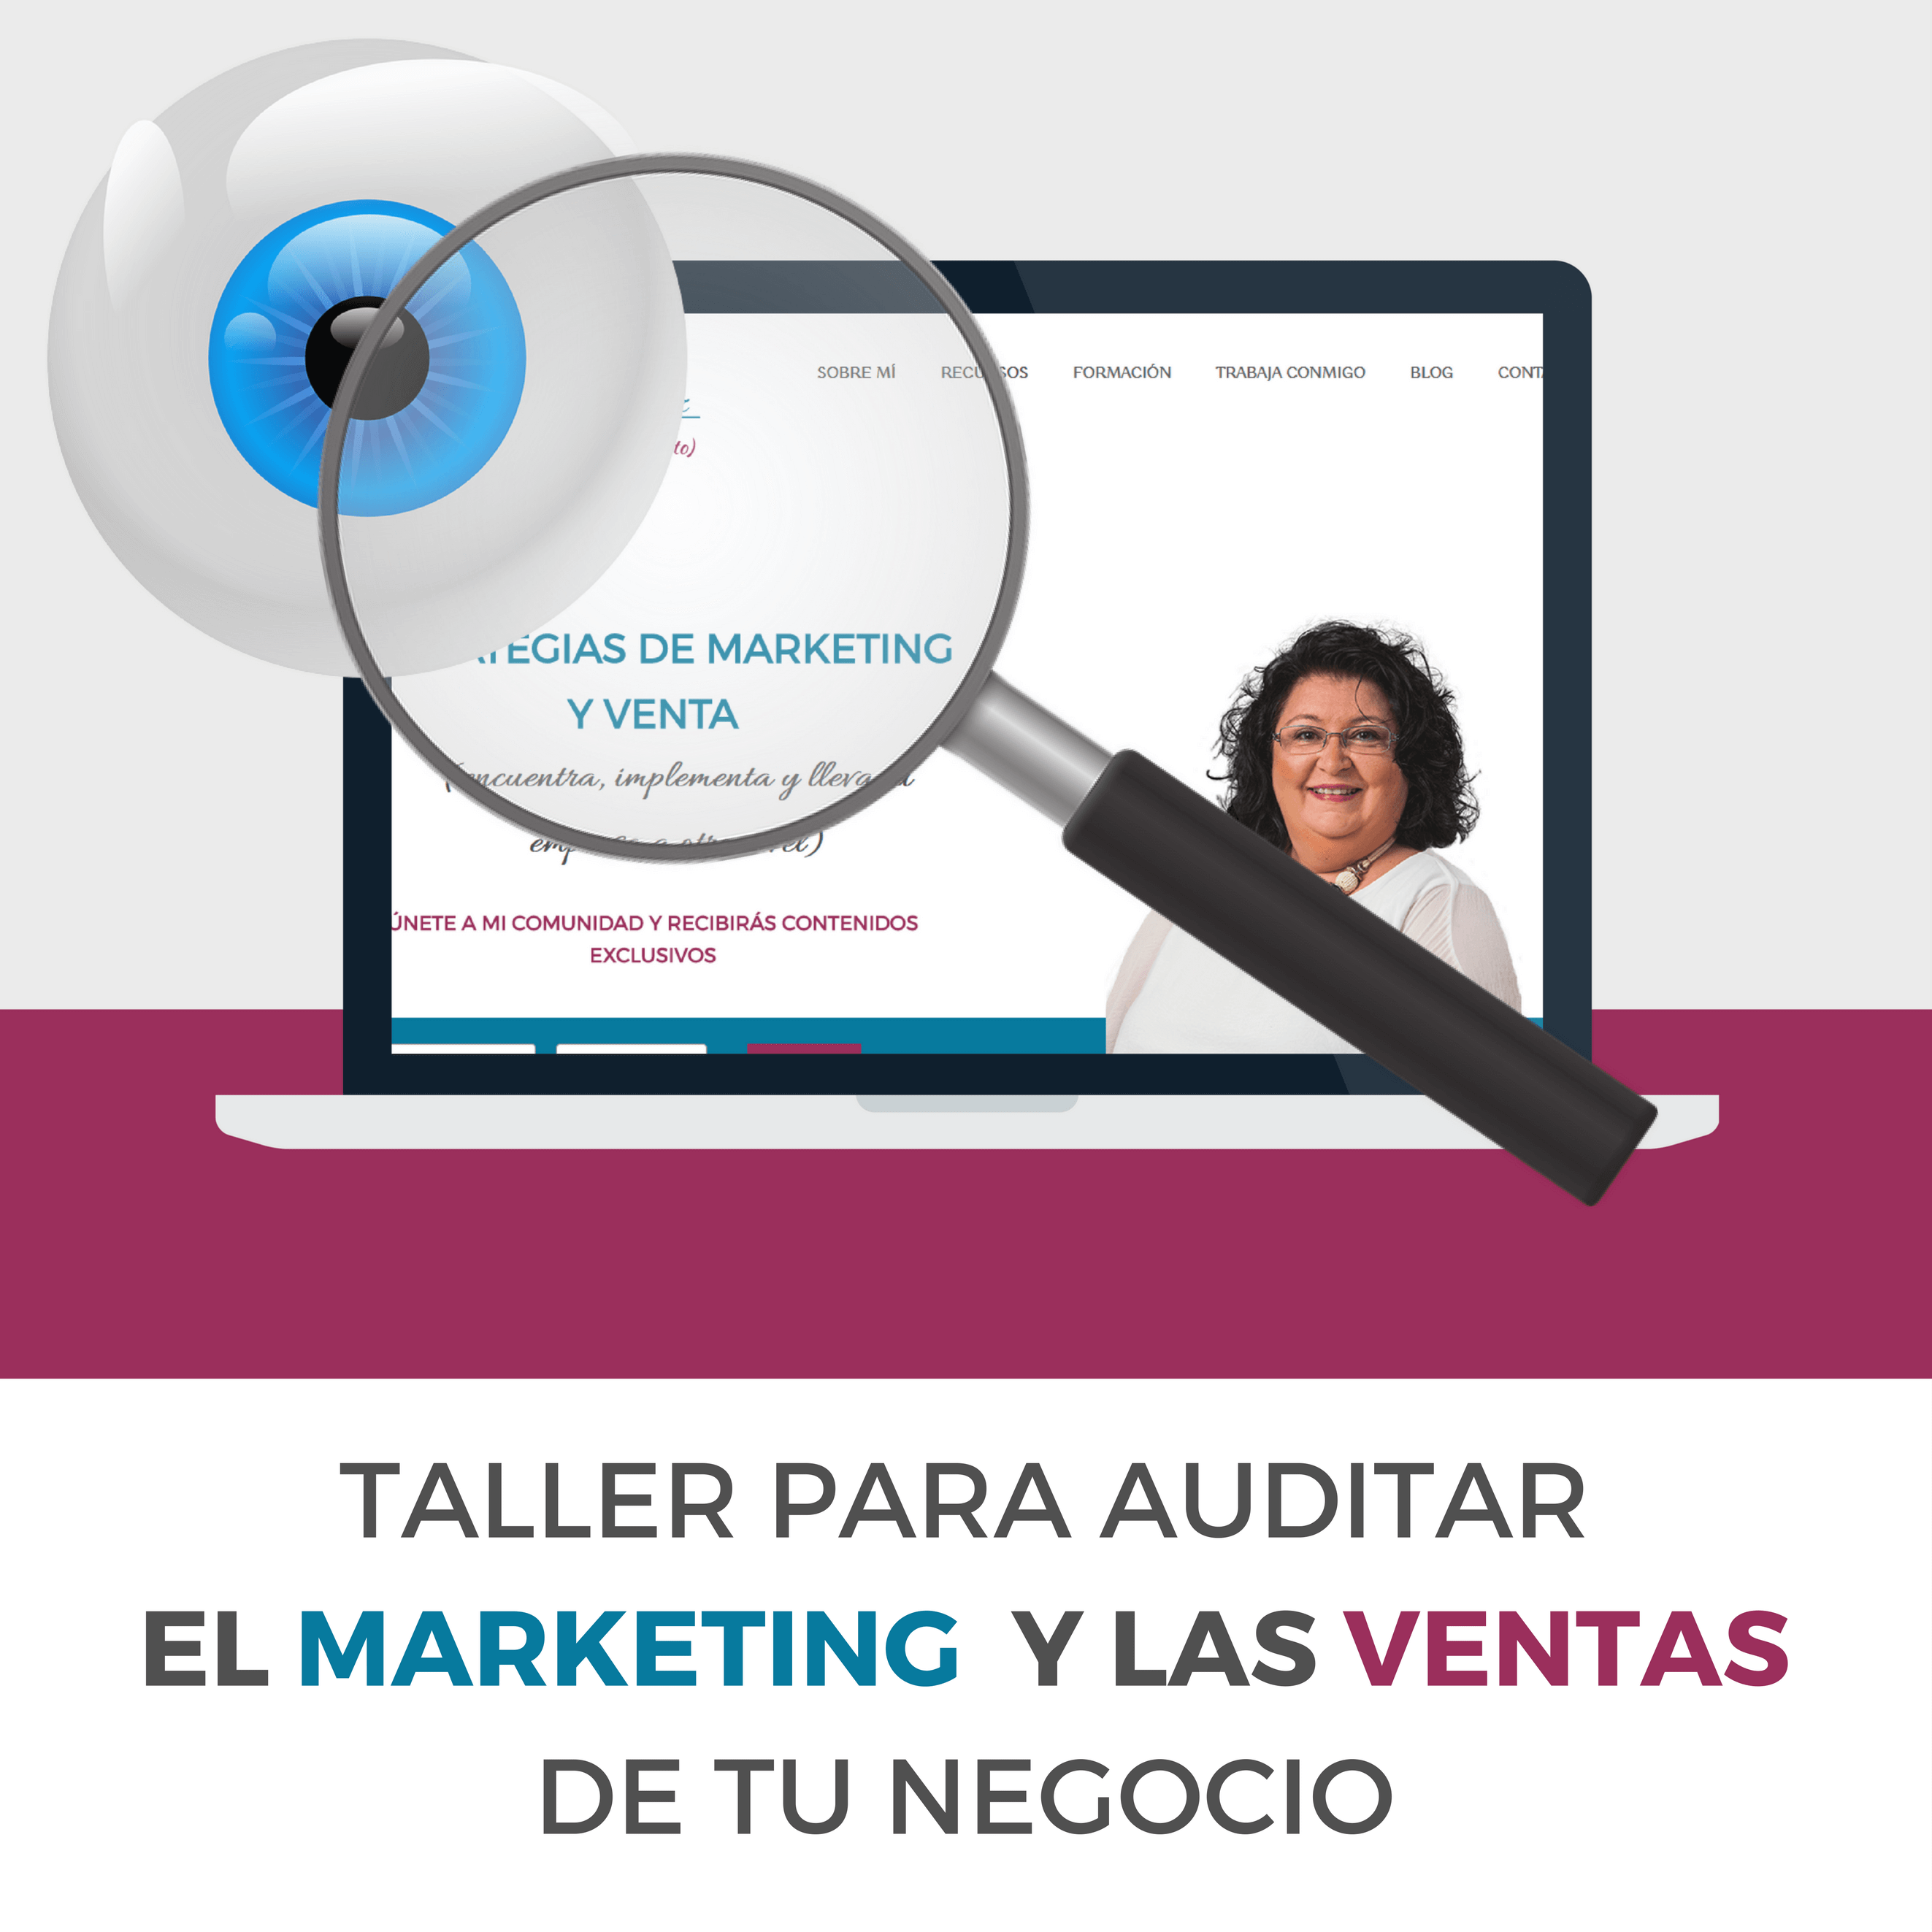 TALLER PARA AUDITAREL MARKETING Y LAS VENTASDE TU NEGOCIO (1)